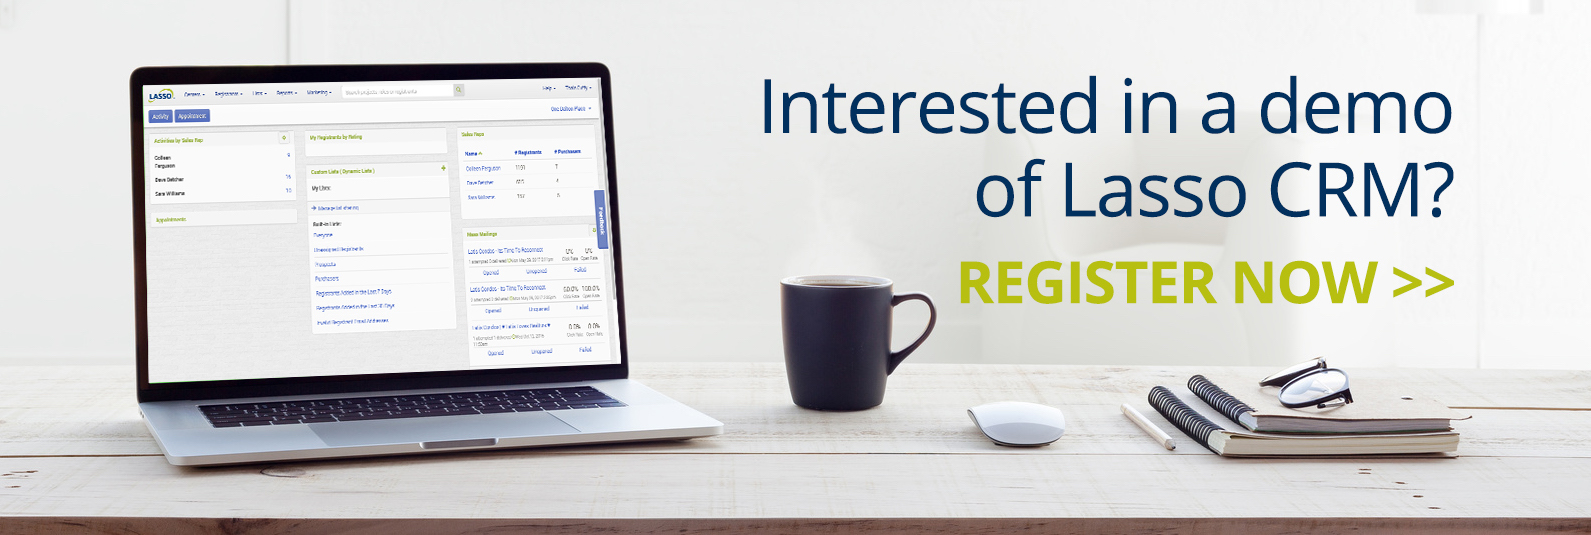 Register for a demo of Lasso CRM